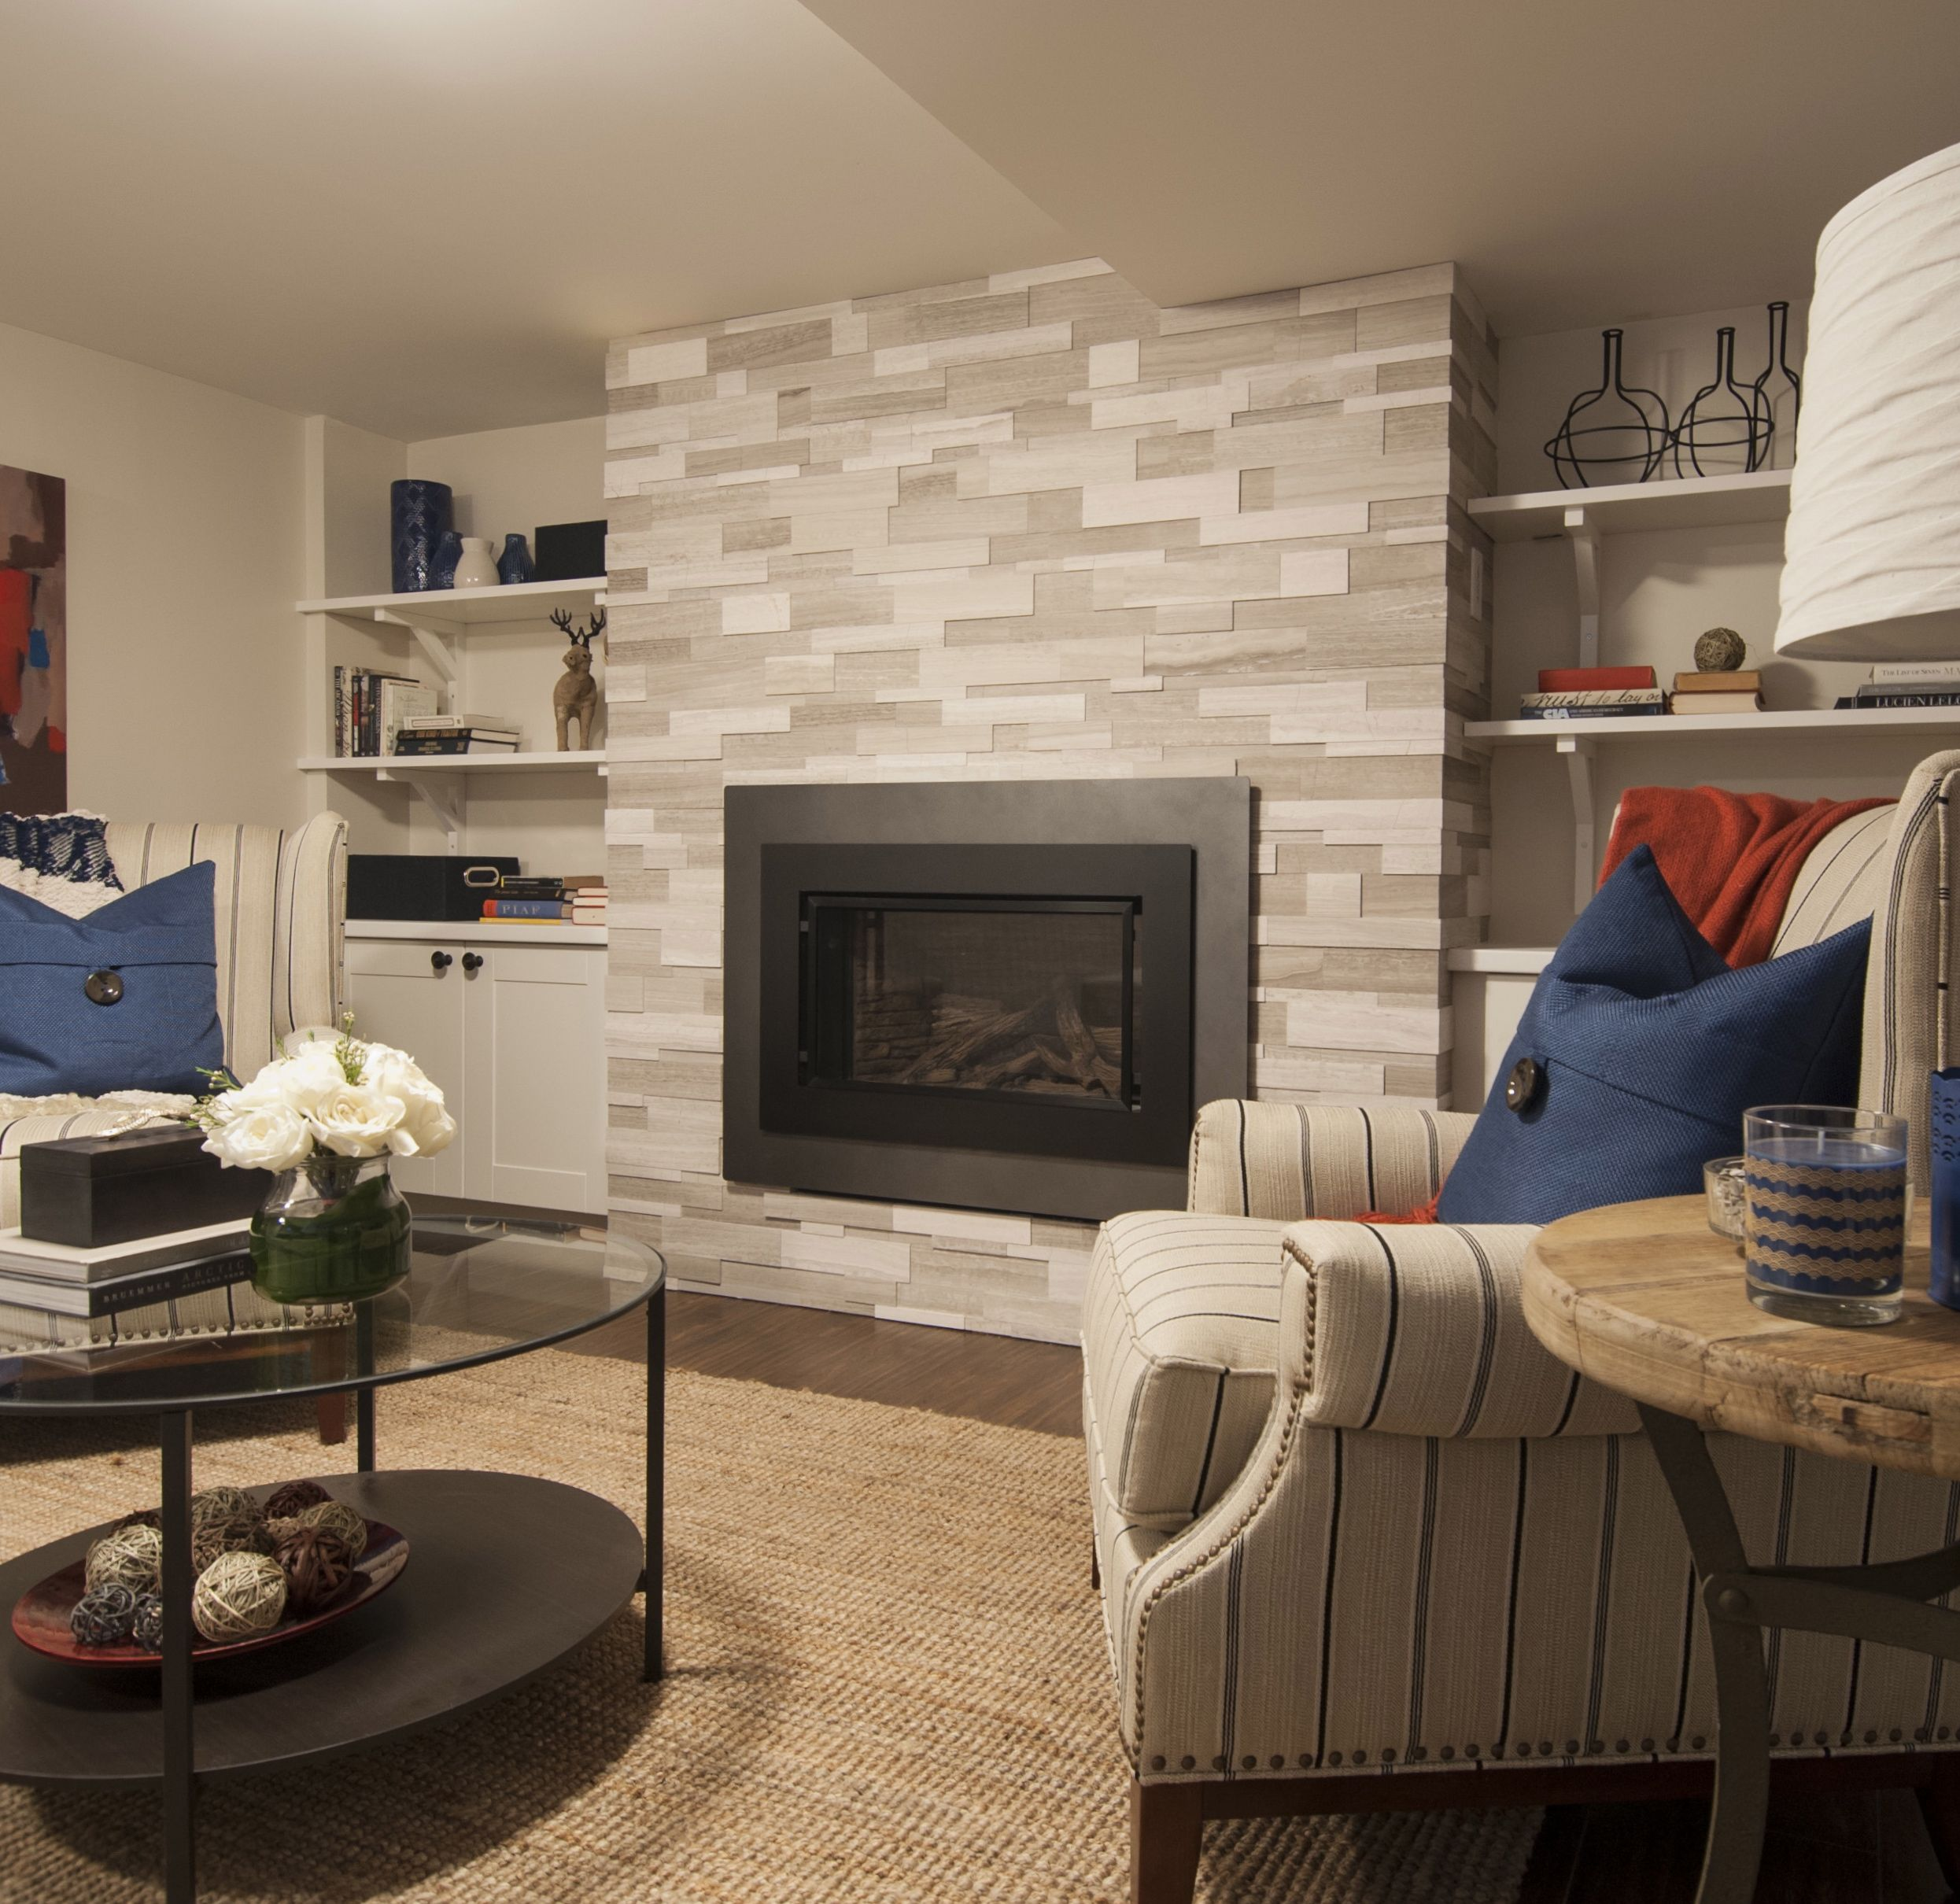 Hgtv Home Design Ideas: Featuring ErthCOVERINGS Silver